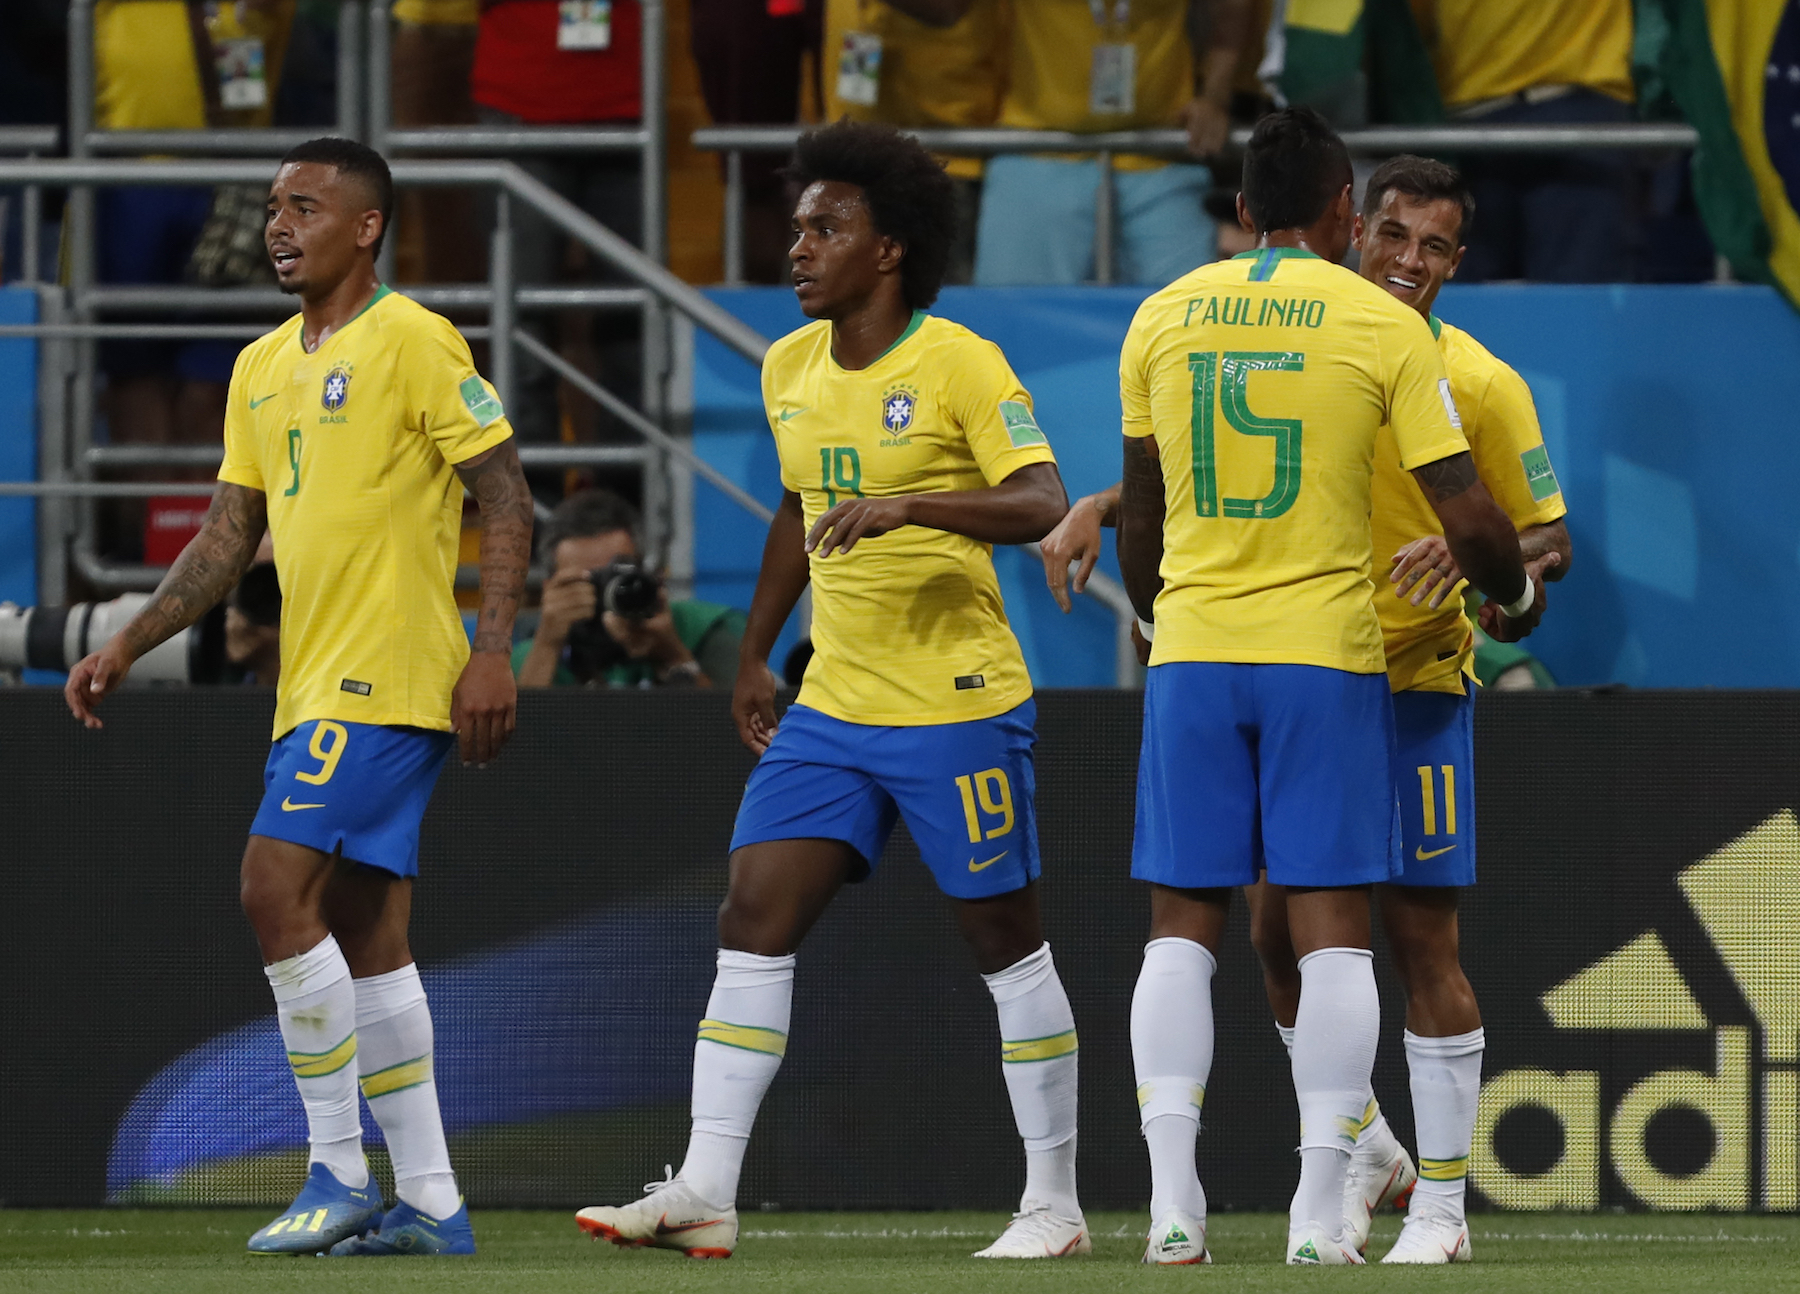 "<div class=""meta image-caption""><div class=""origin-logo origin-image ap""><span>AP</span></div><span class=""caption-text"">Brazil's Philippe Coutinho, right, celebrates after scoring with his teammate Paulinho during the group E match between Brazil and Switzerland at the 2018 soccer World Cup. (AP Photo/Darko Vojinovic)</span></div>"